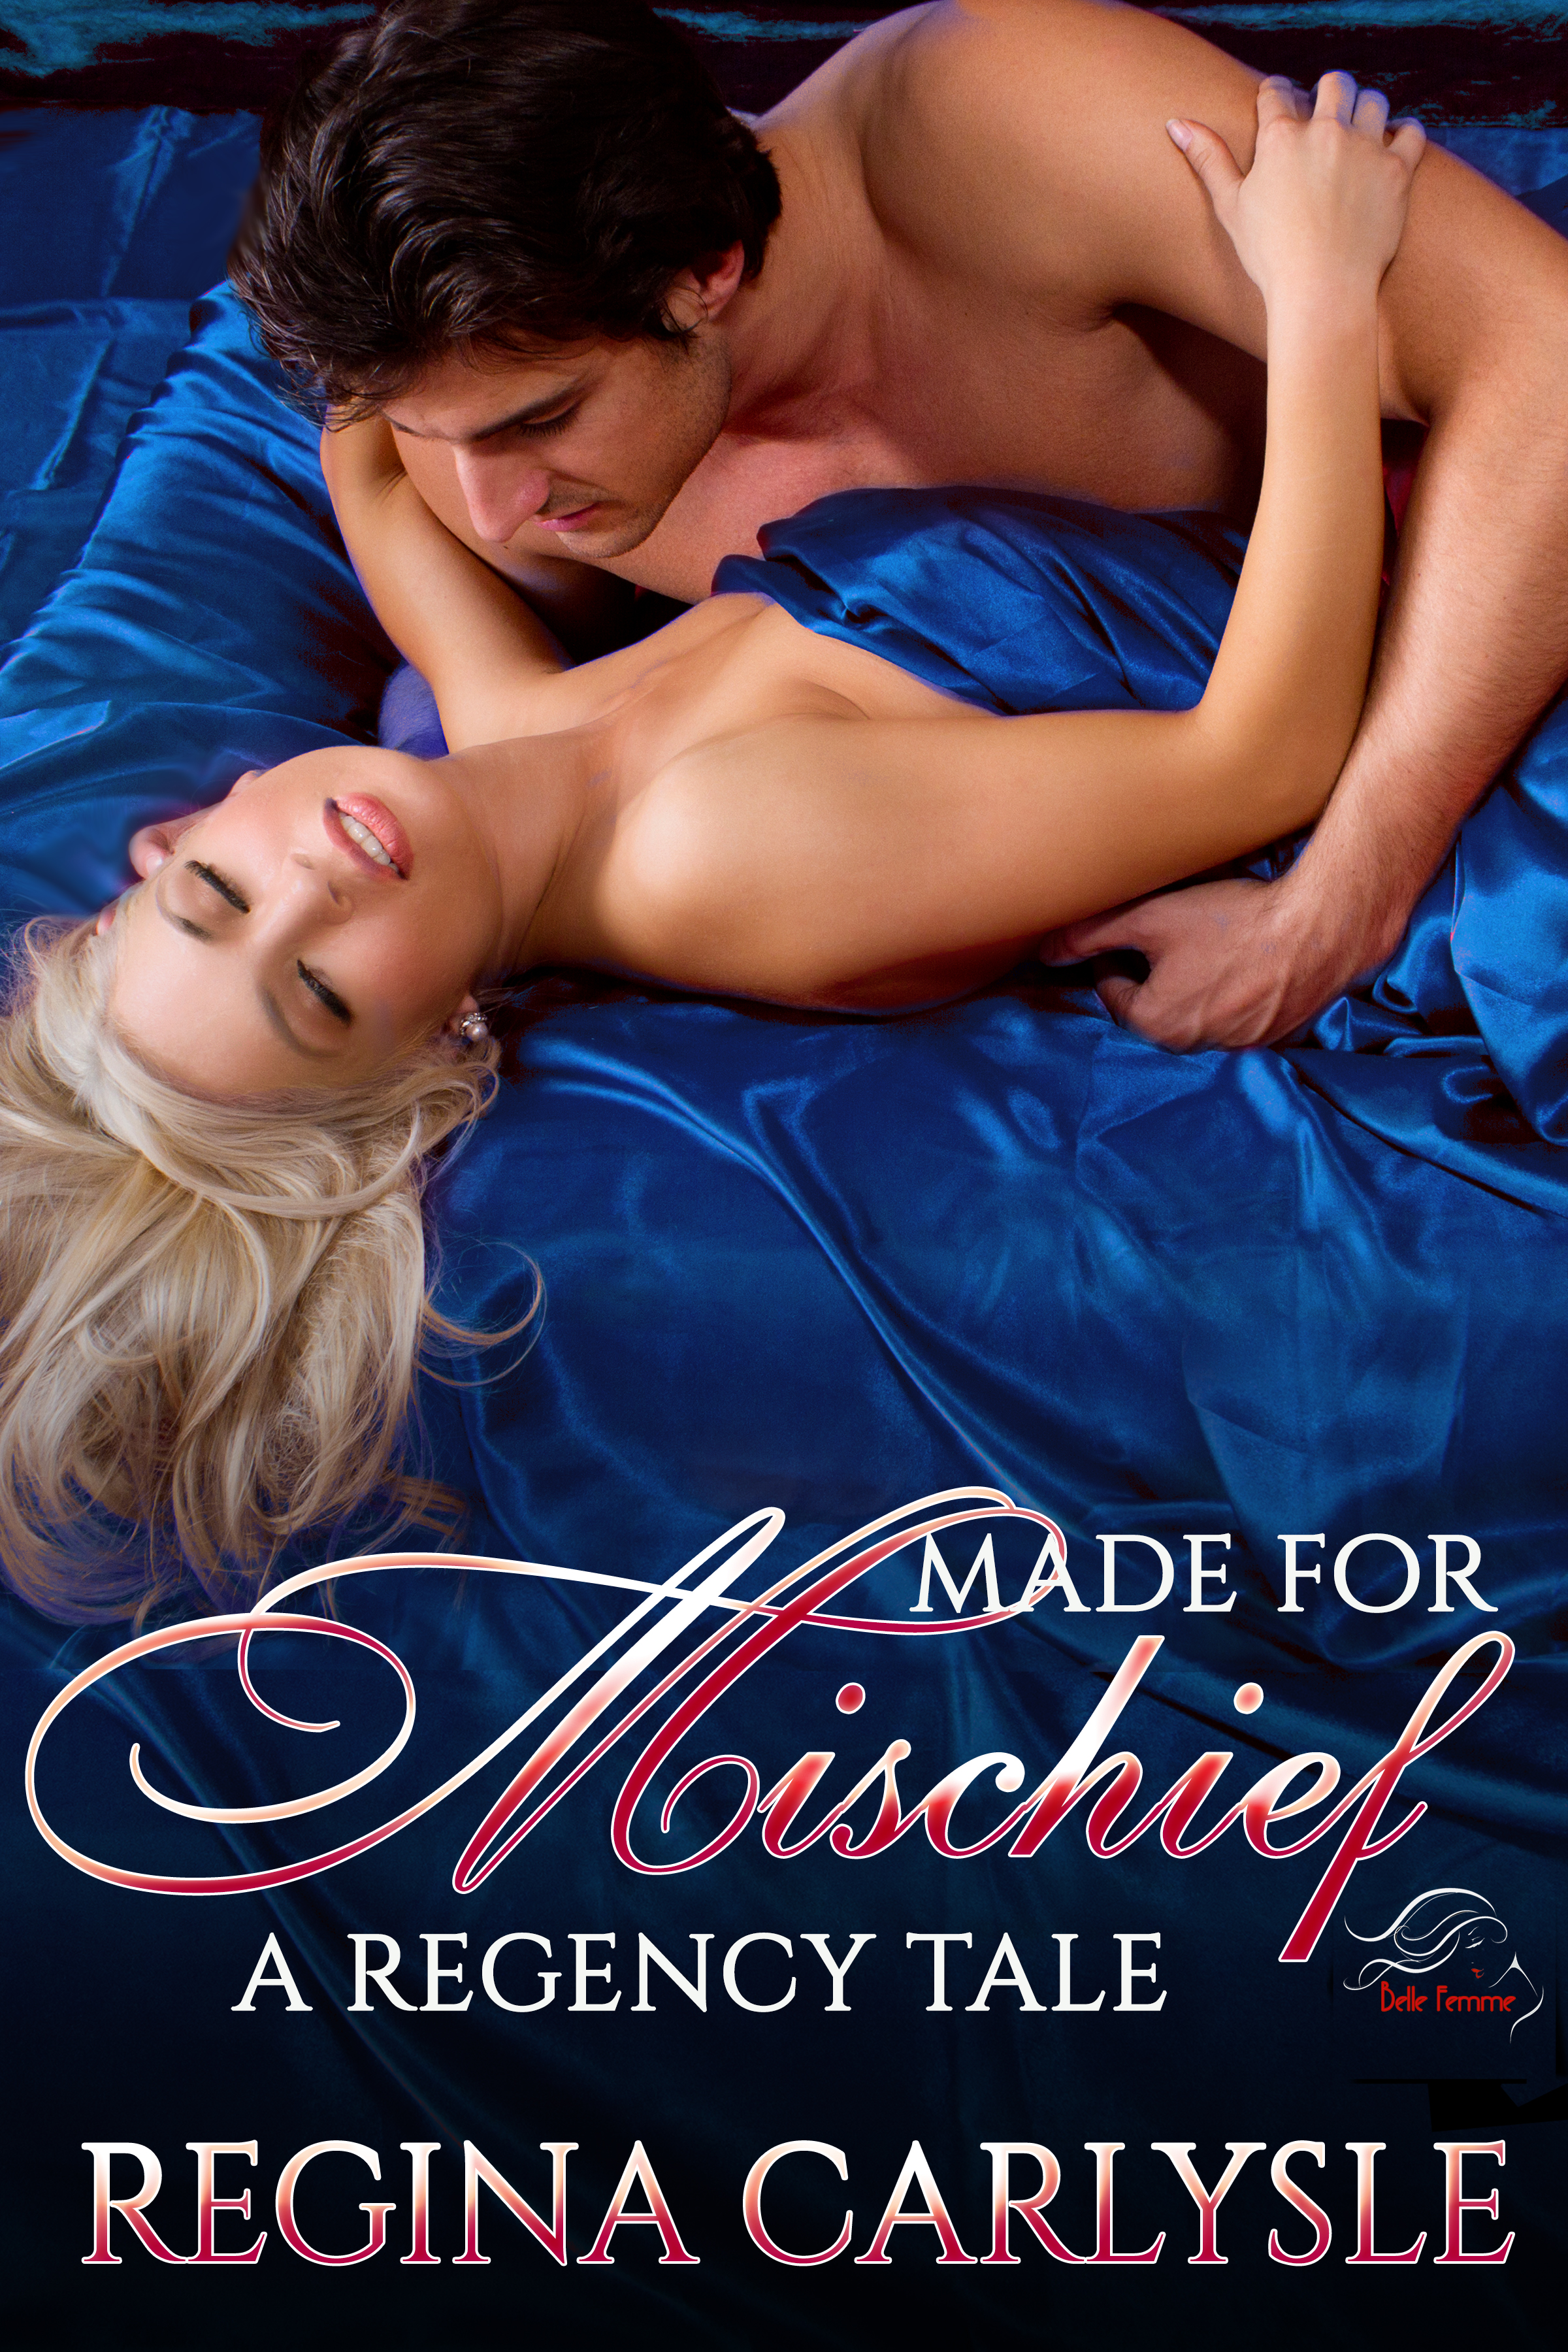 What happened when he found her beneath his bed?